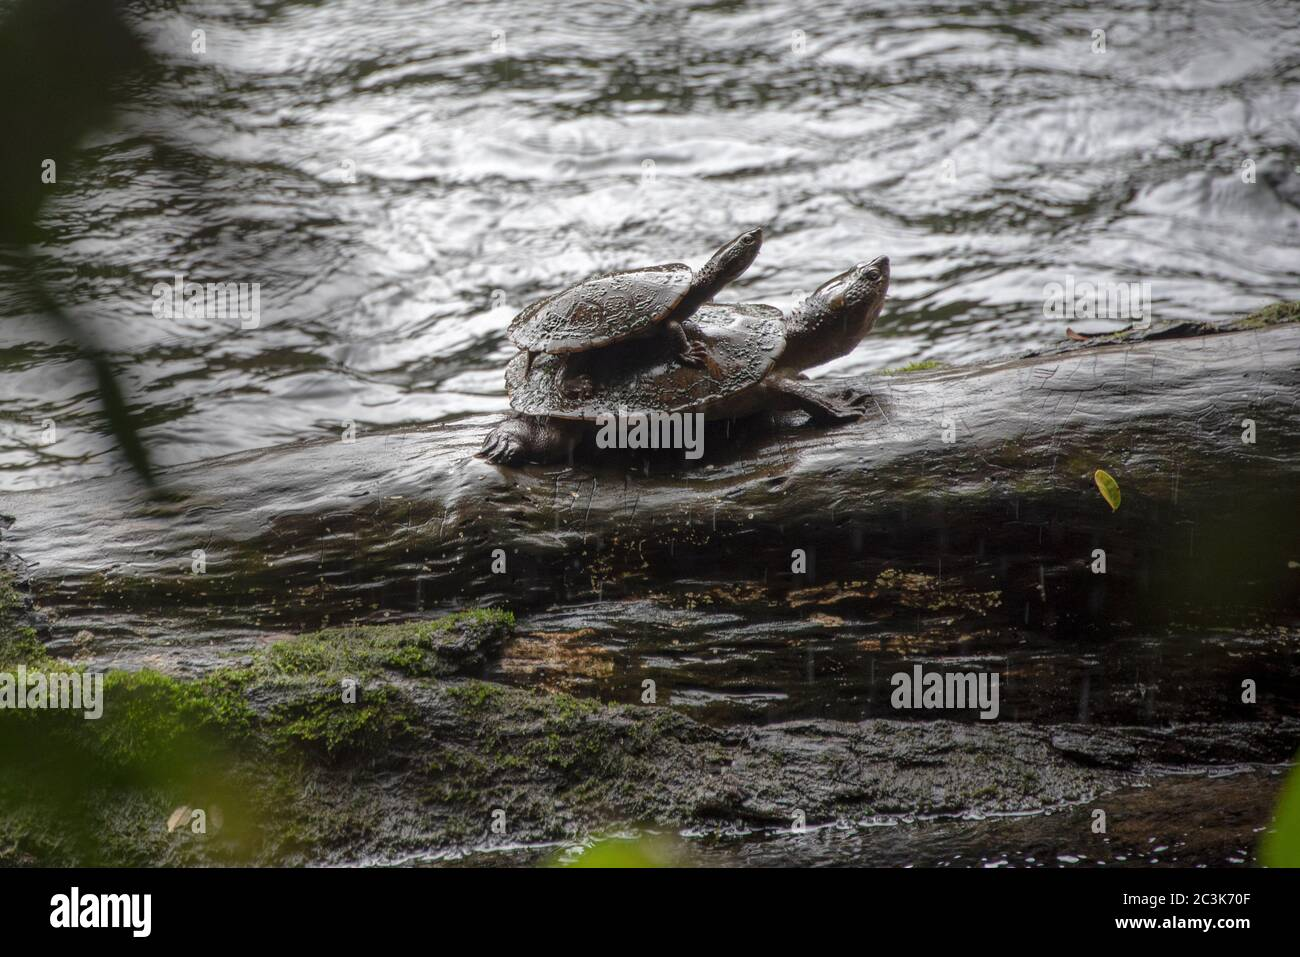 Saw-shelled turtle with baby hitching a ride on mother's back. Far North Queensland, Australia. Stock Photo